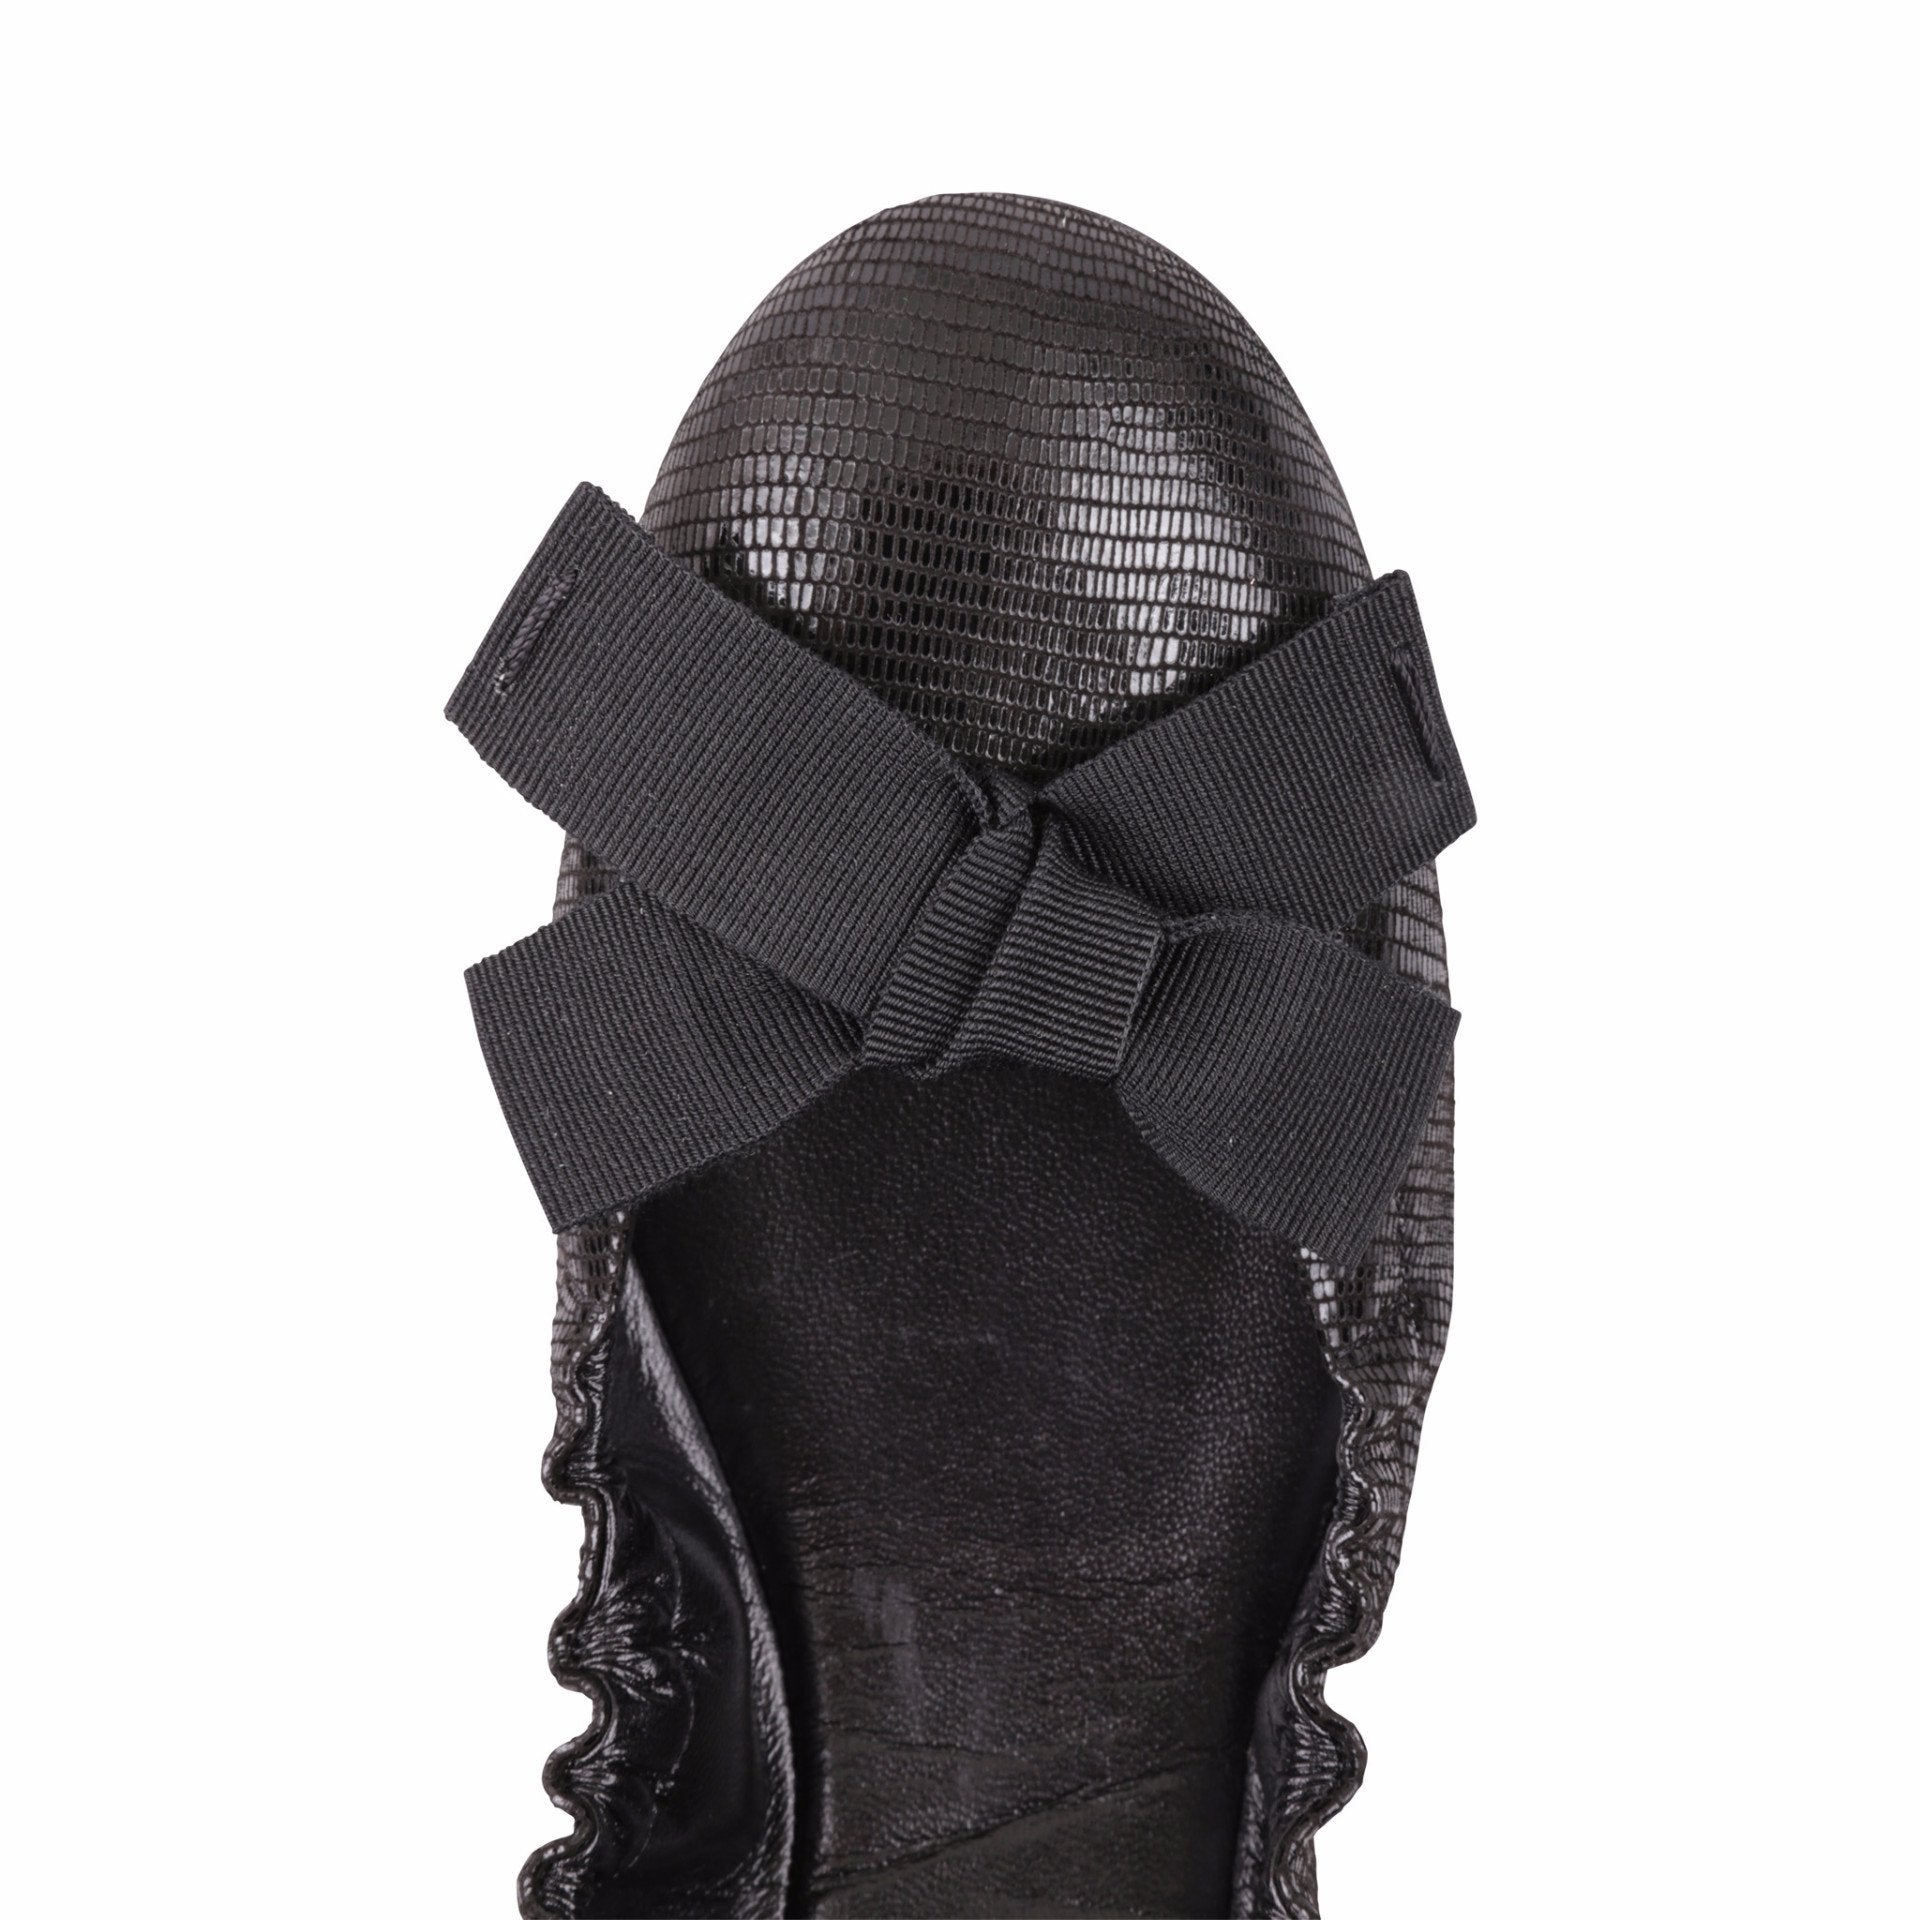 PORTOFINO - Varanus Nero + Grosgrain Bow, VIAJIYU - Women's Hand Made Sustainable Luxury Shoes. Made in Italy. Made to Order.